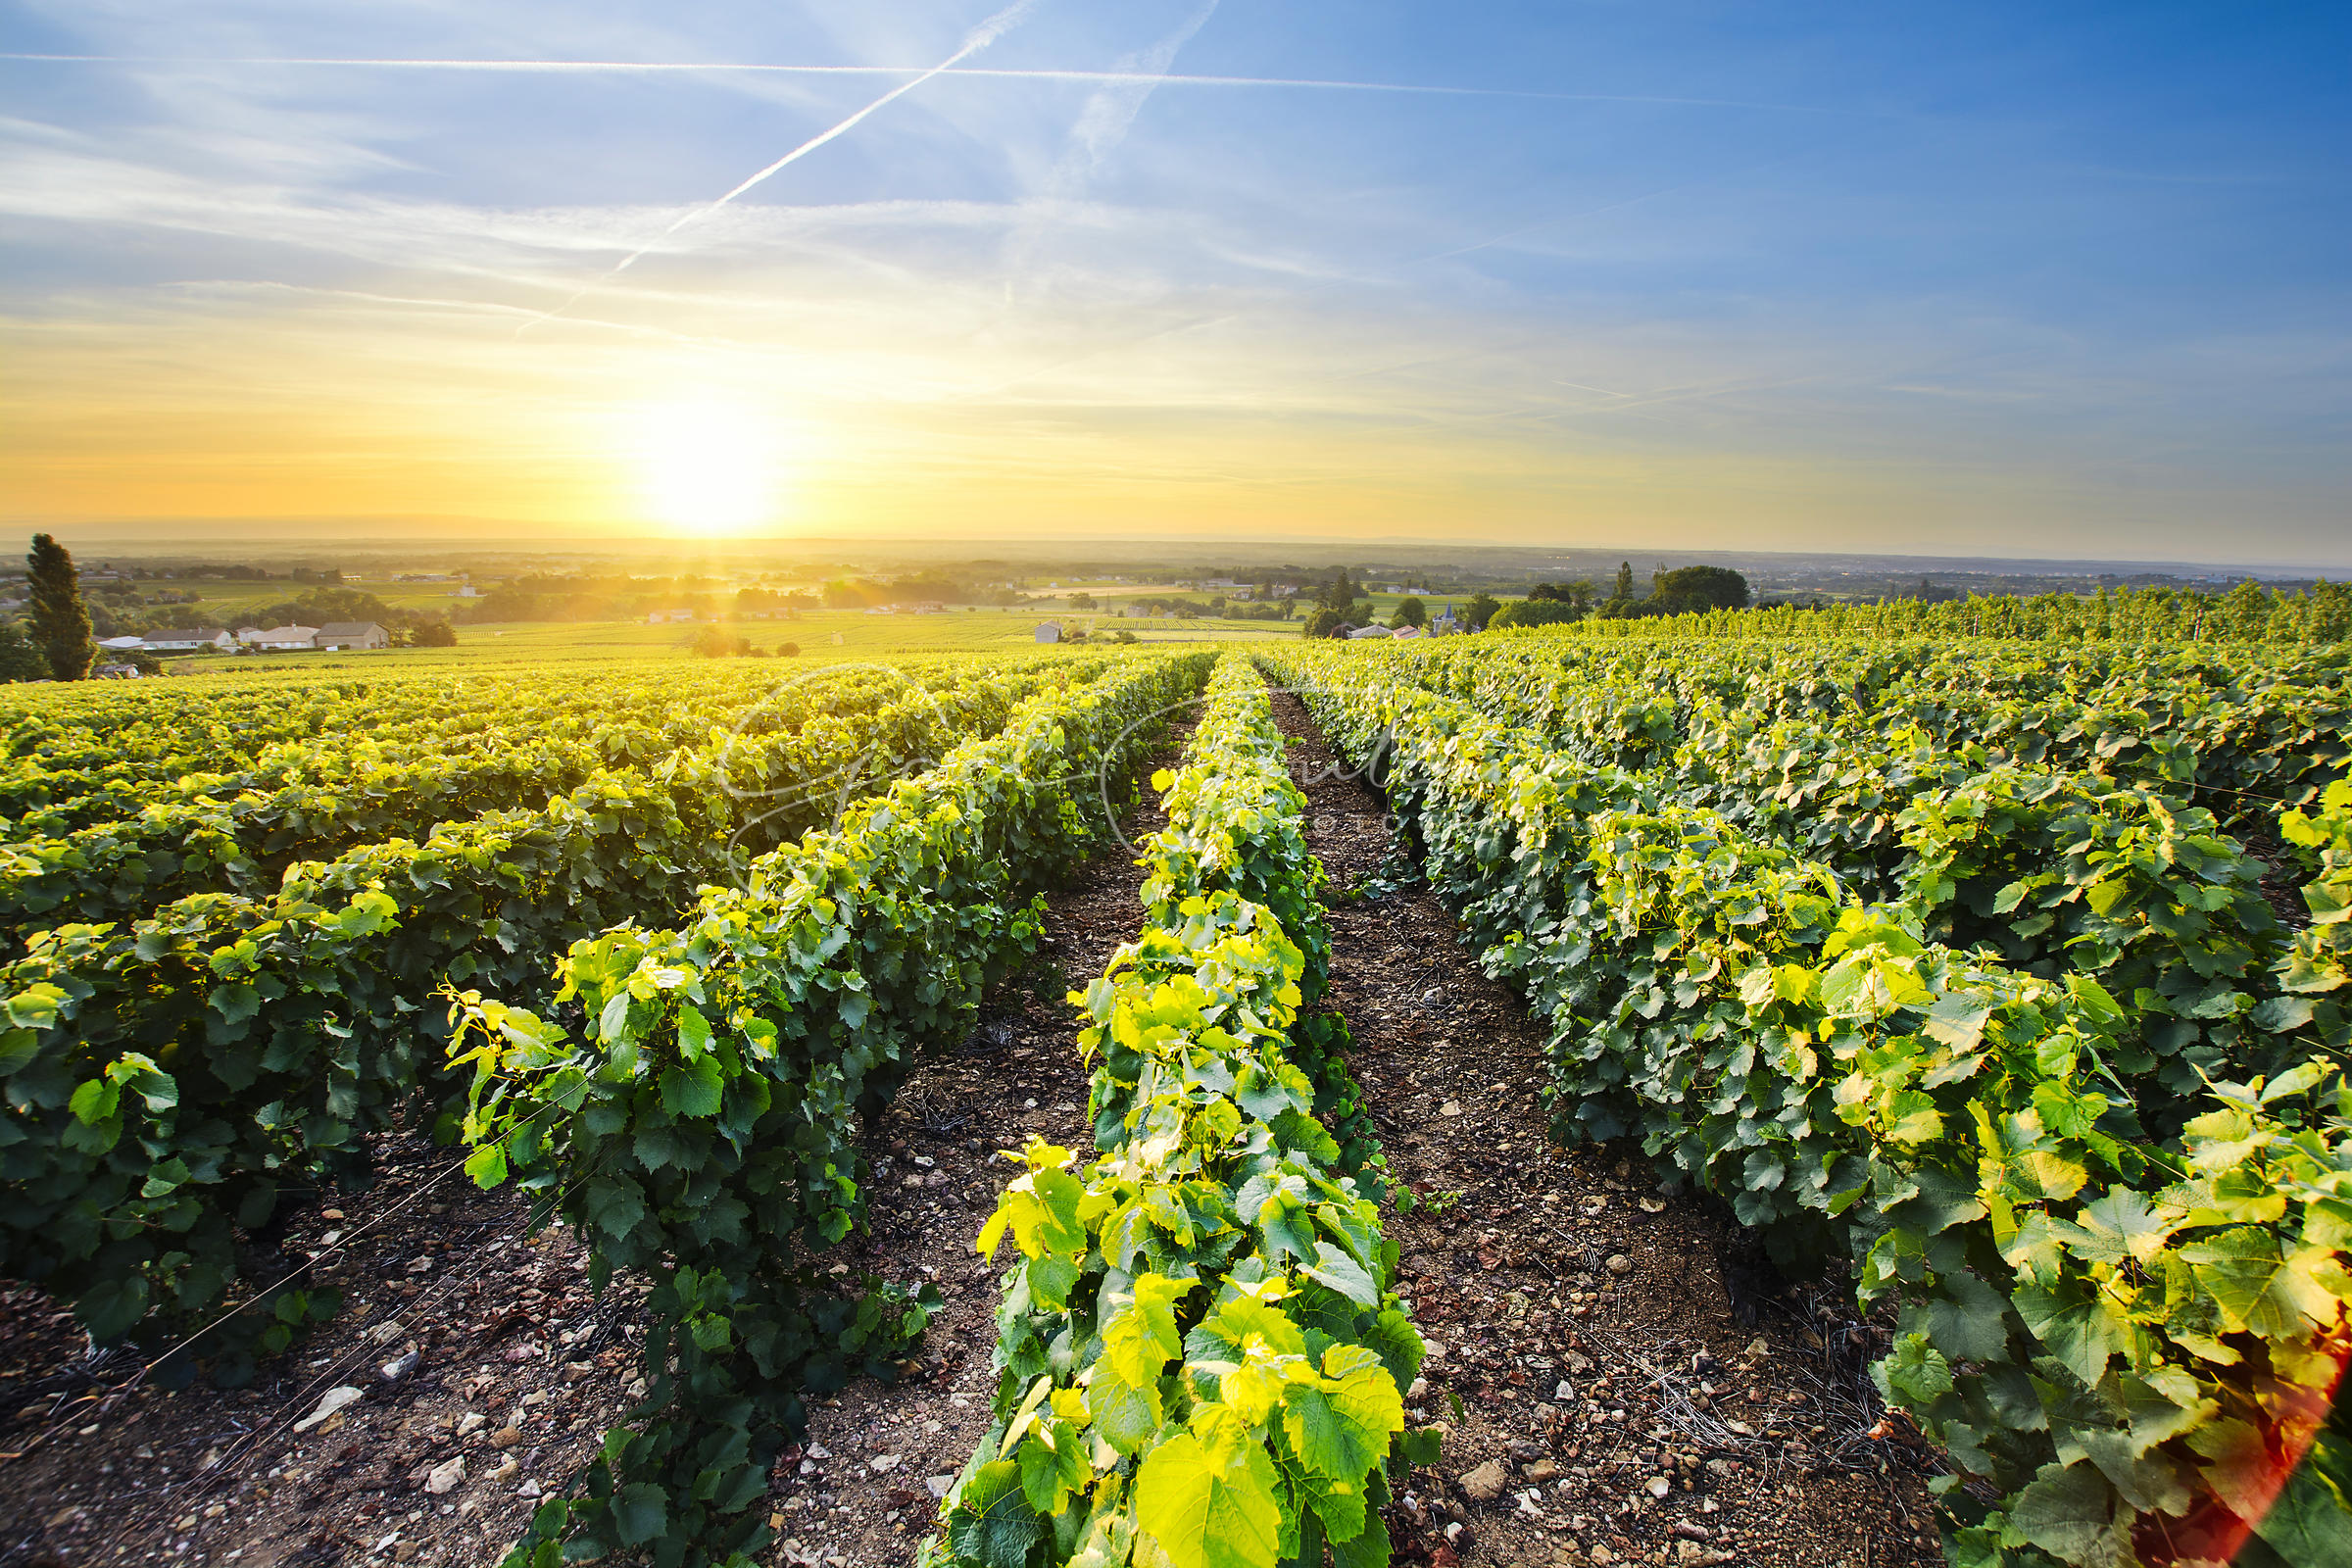 Sun_is_rising_over_vineyards_of_Beaujolais_France_-_6000_x_4000